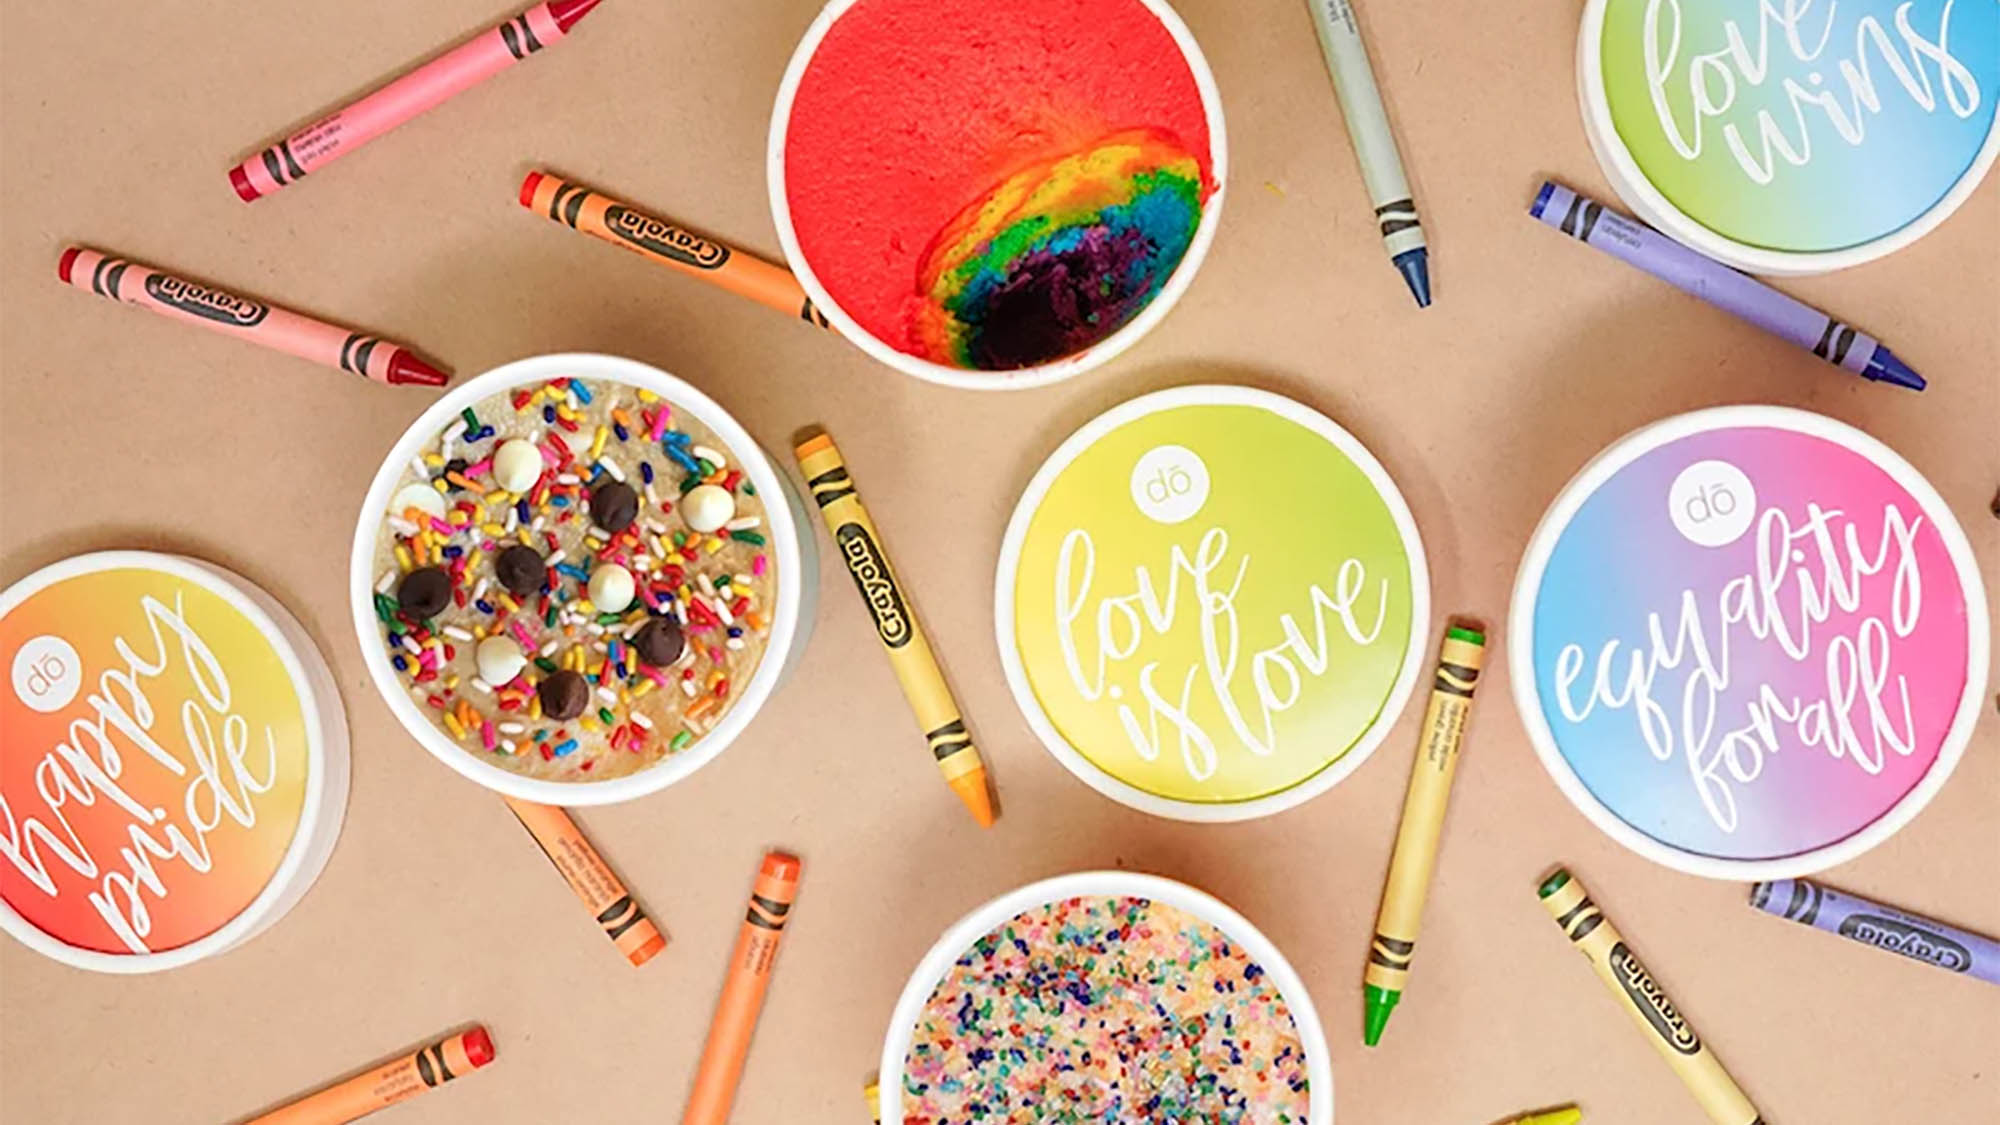 Rainbow edible cookie dough containers open and closed laid out with multicolored crayons on beige backdrop